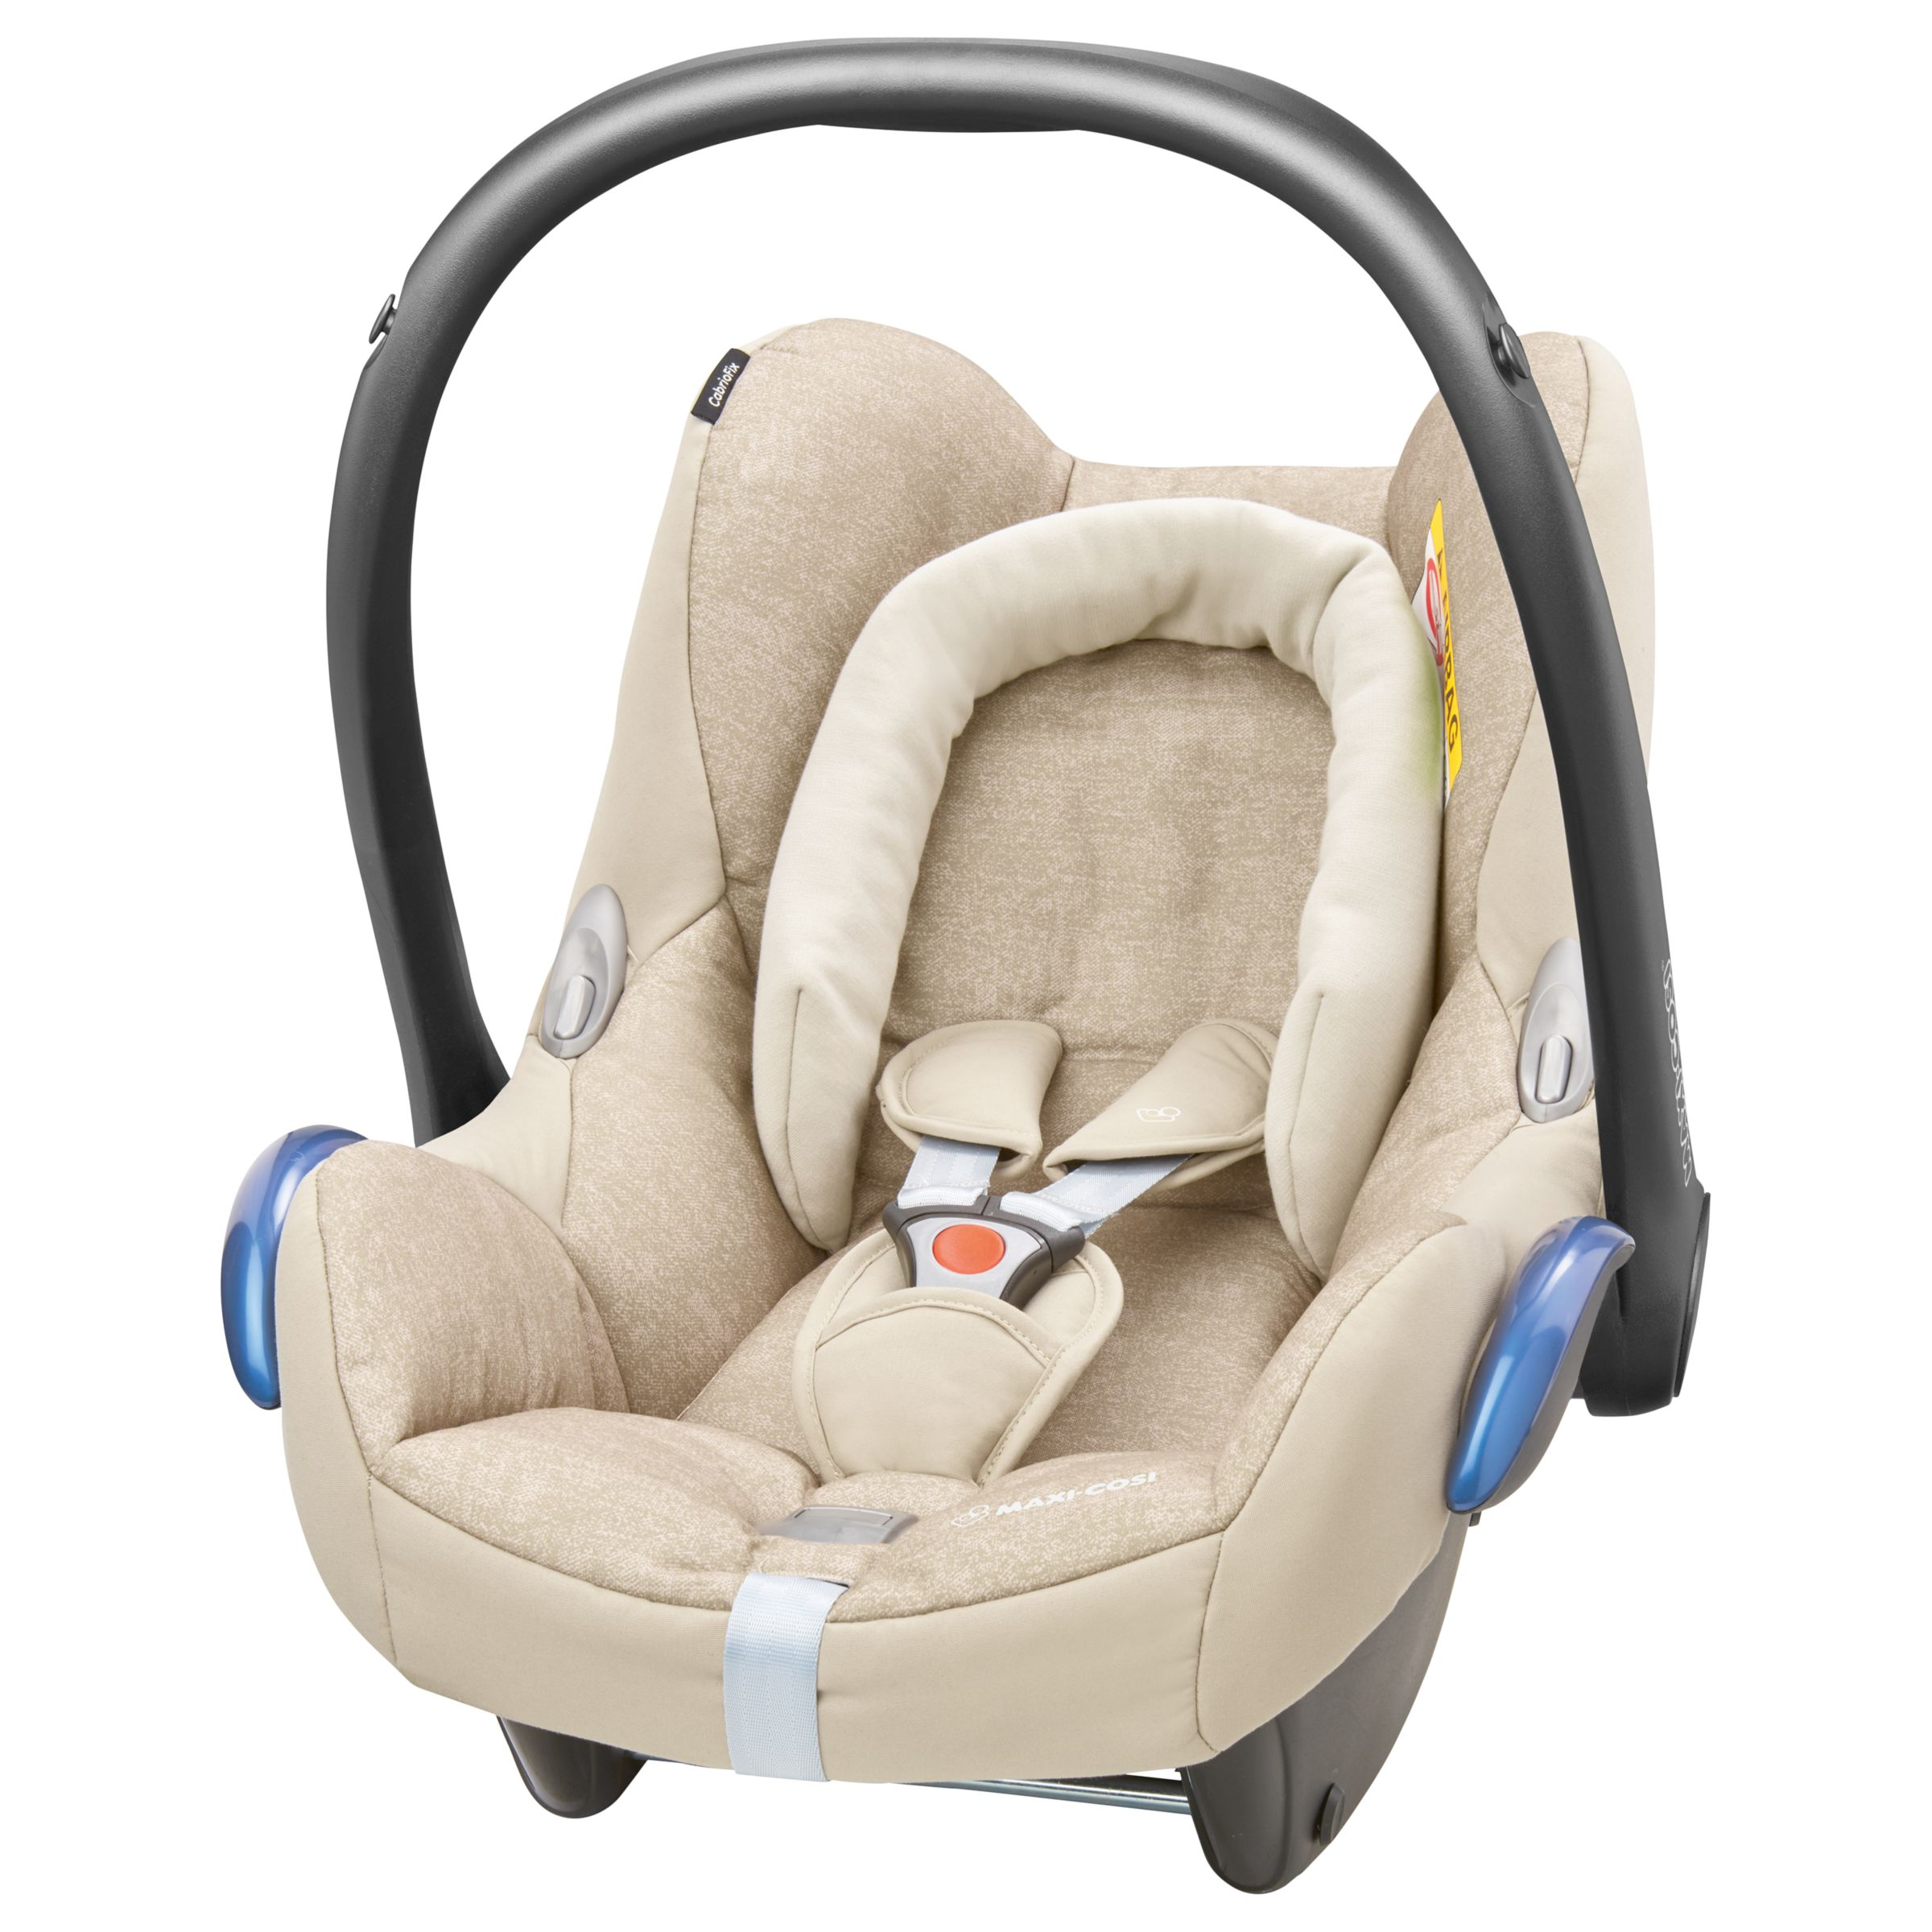 maxi cosi familyfix base group 0 1 car seat base at john. Black Bedroom Furniture Sets. Home Design Ideas